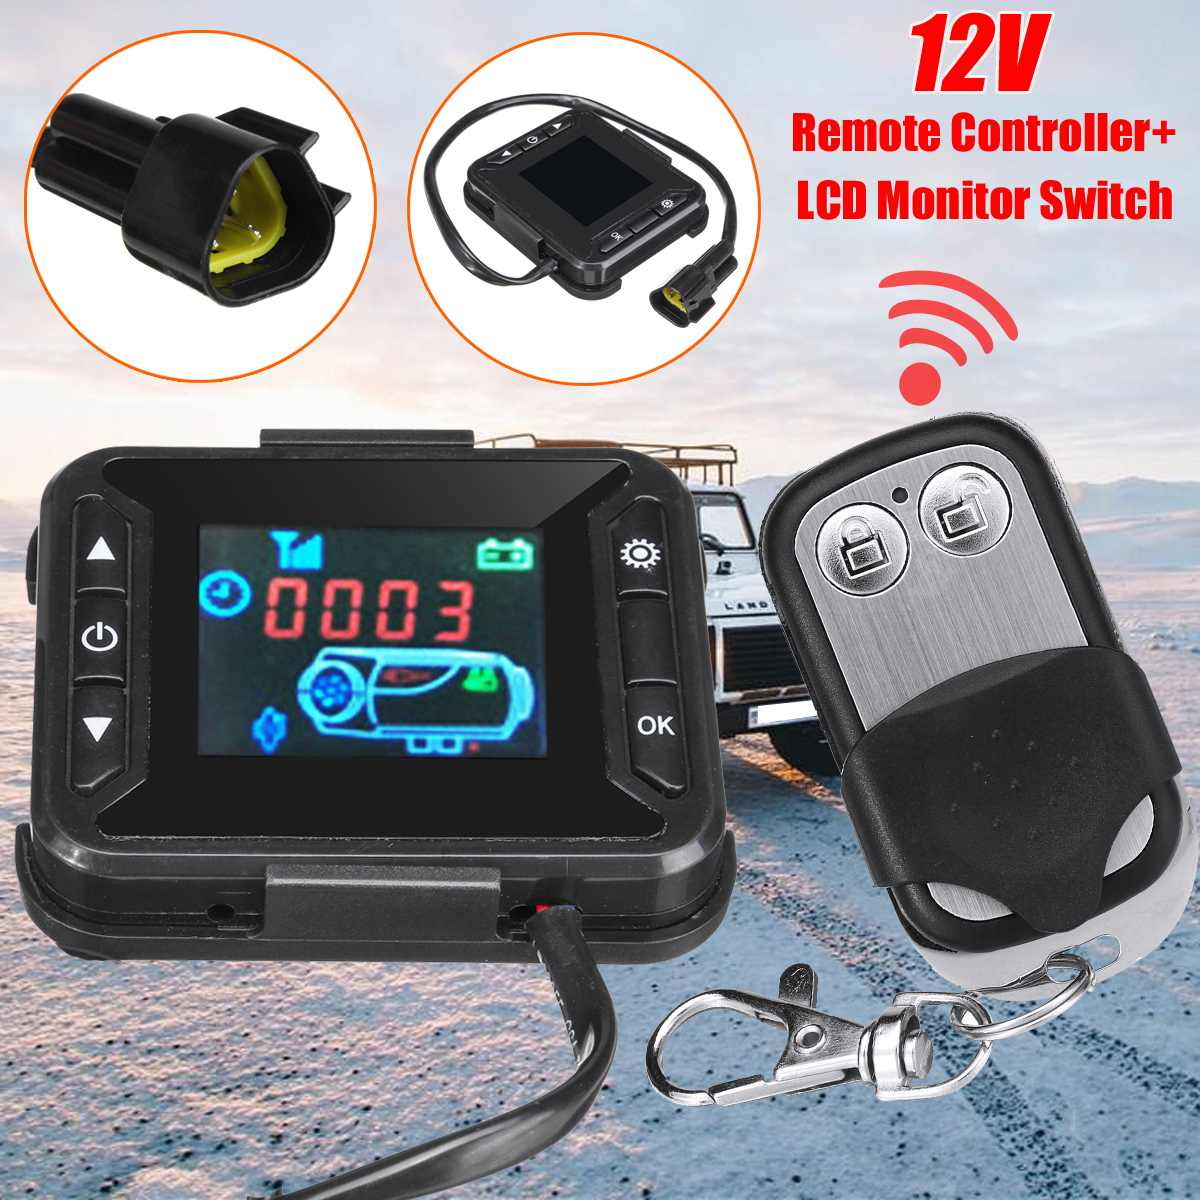 12V Car Heater LCD Minitor Switch + Remote Controller for Truck Motorhome Diesels Parking Heater Parts Car Accessories